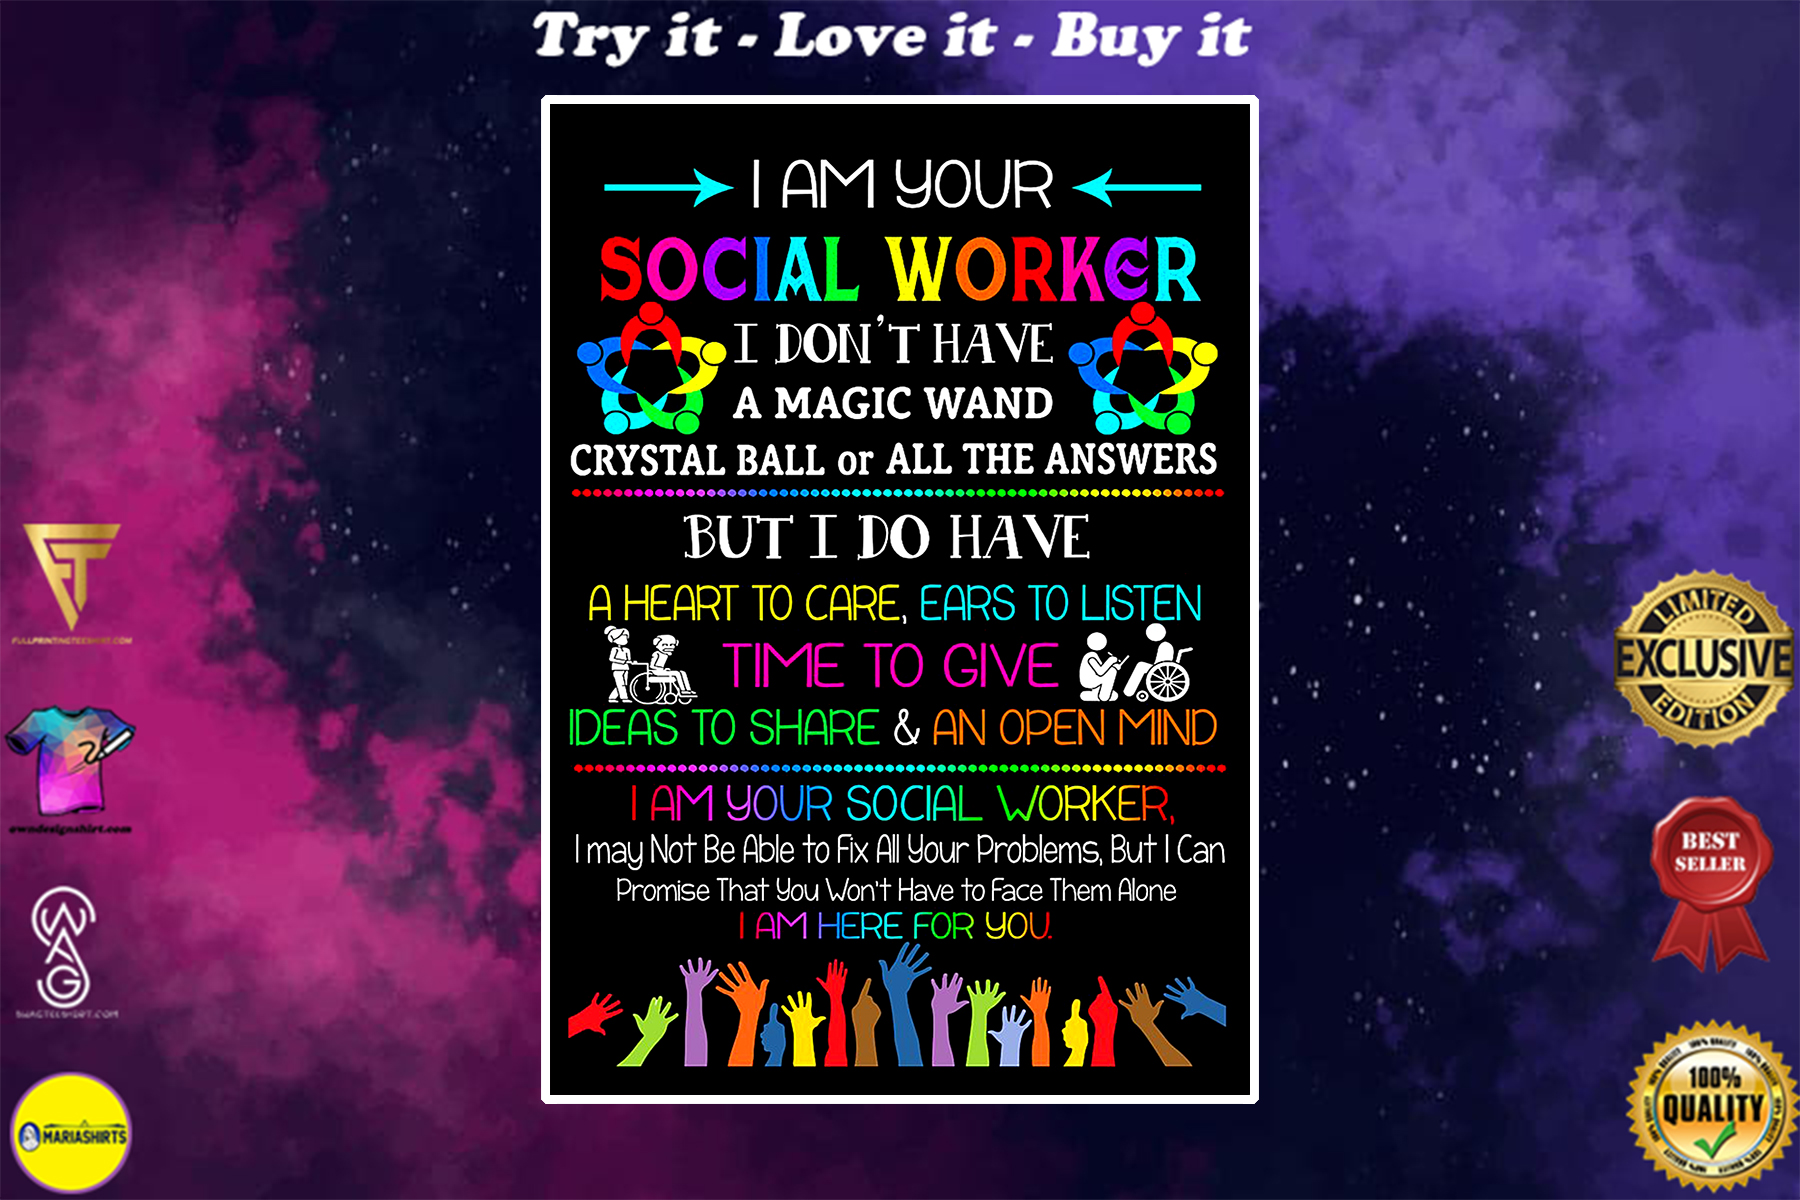 i am your social worker i am here for you poster